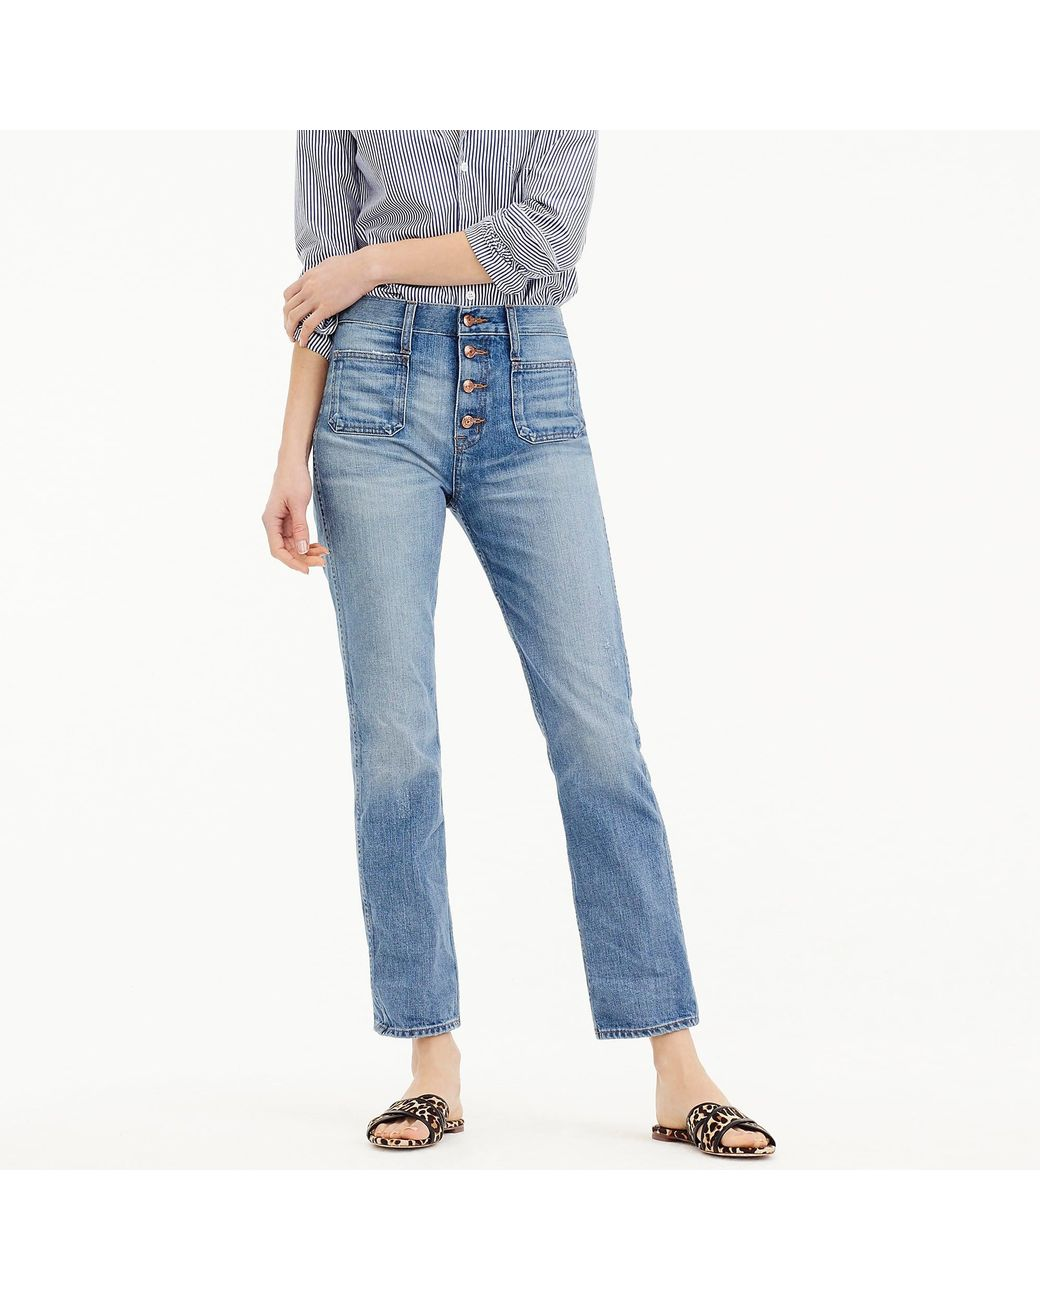 d70e9601de J.Crew Point Sur Vintage Patch-pocket Cropped Jean In Light Wash in ...